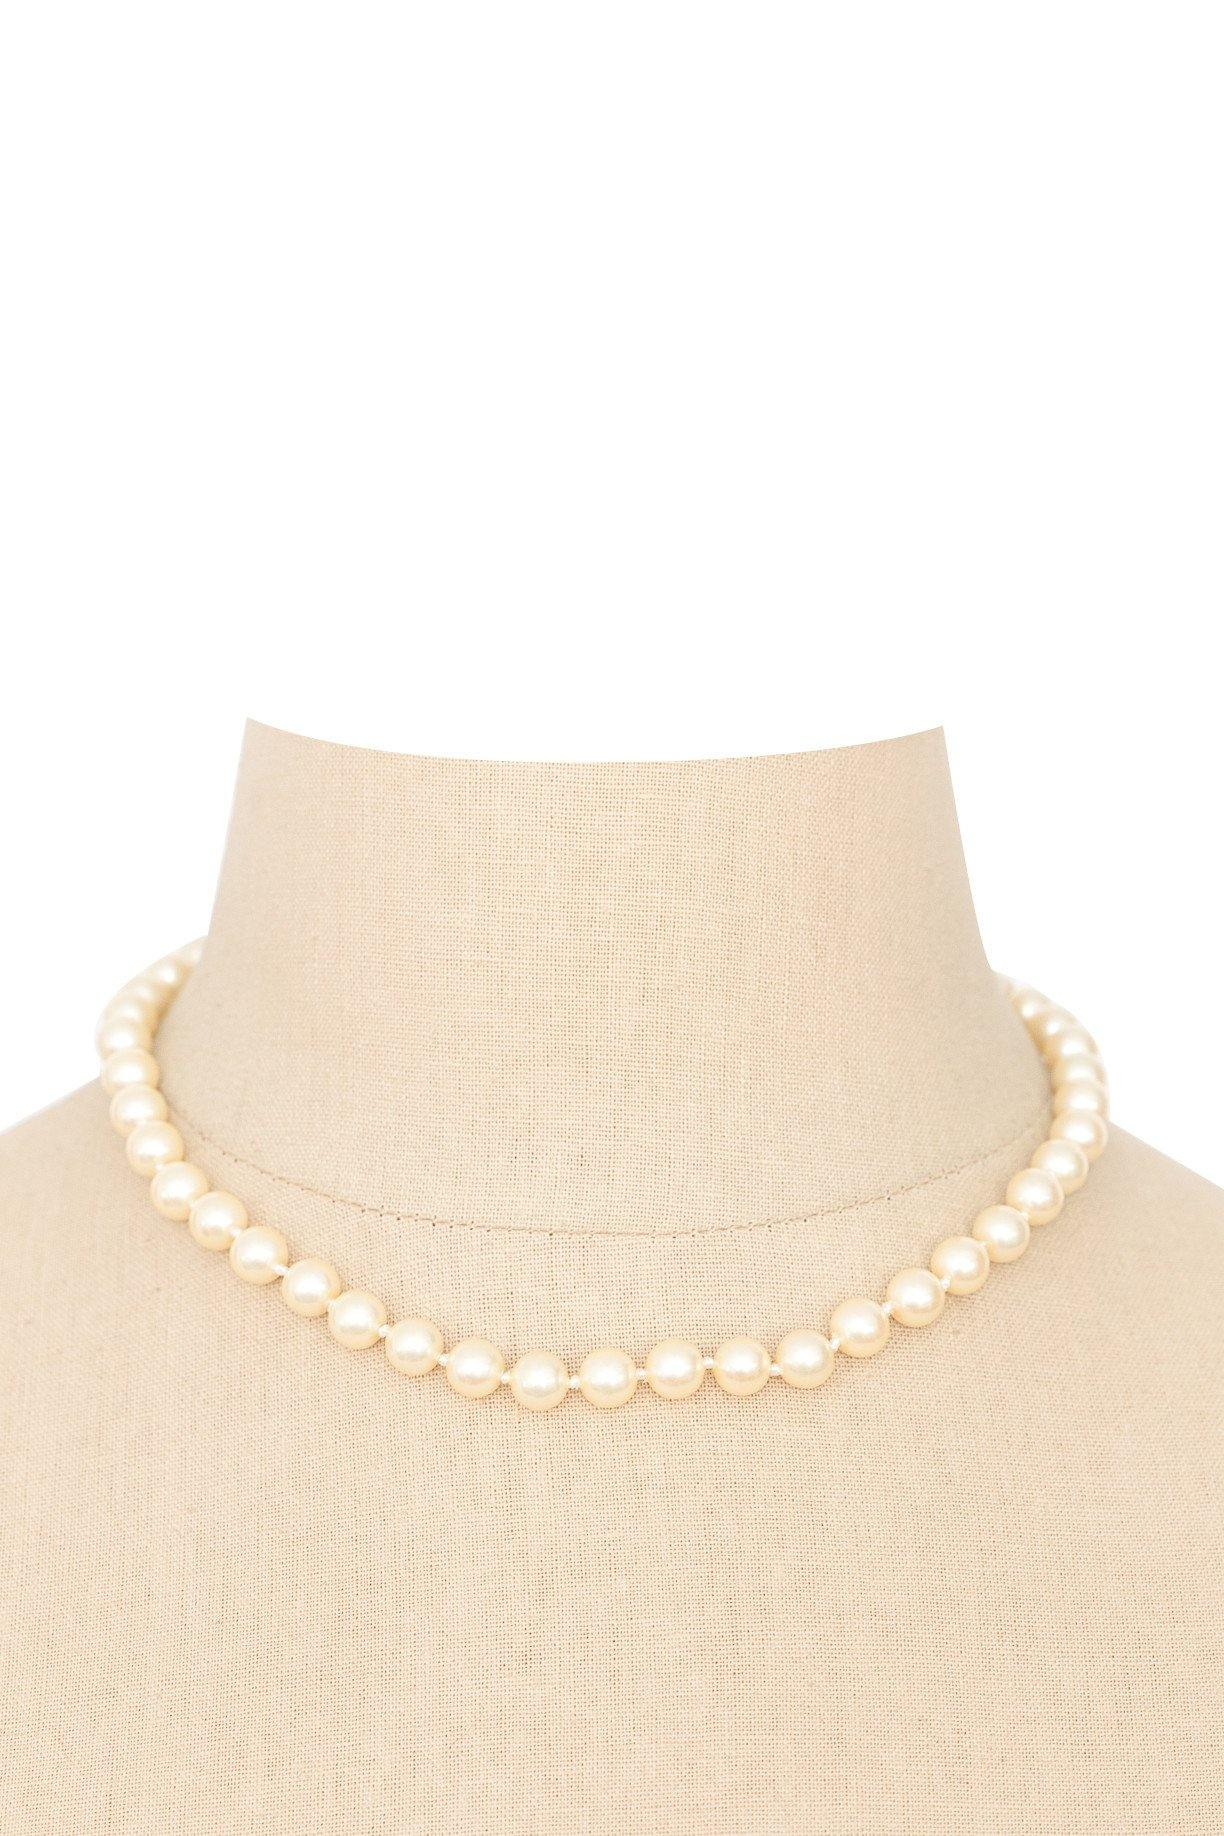 1980's Marvella Classic Pearl Necklace